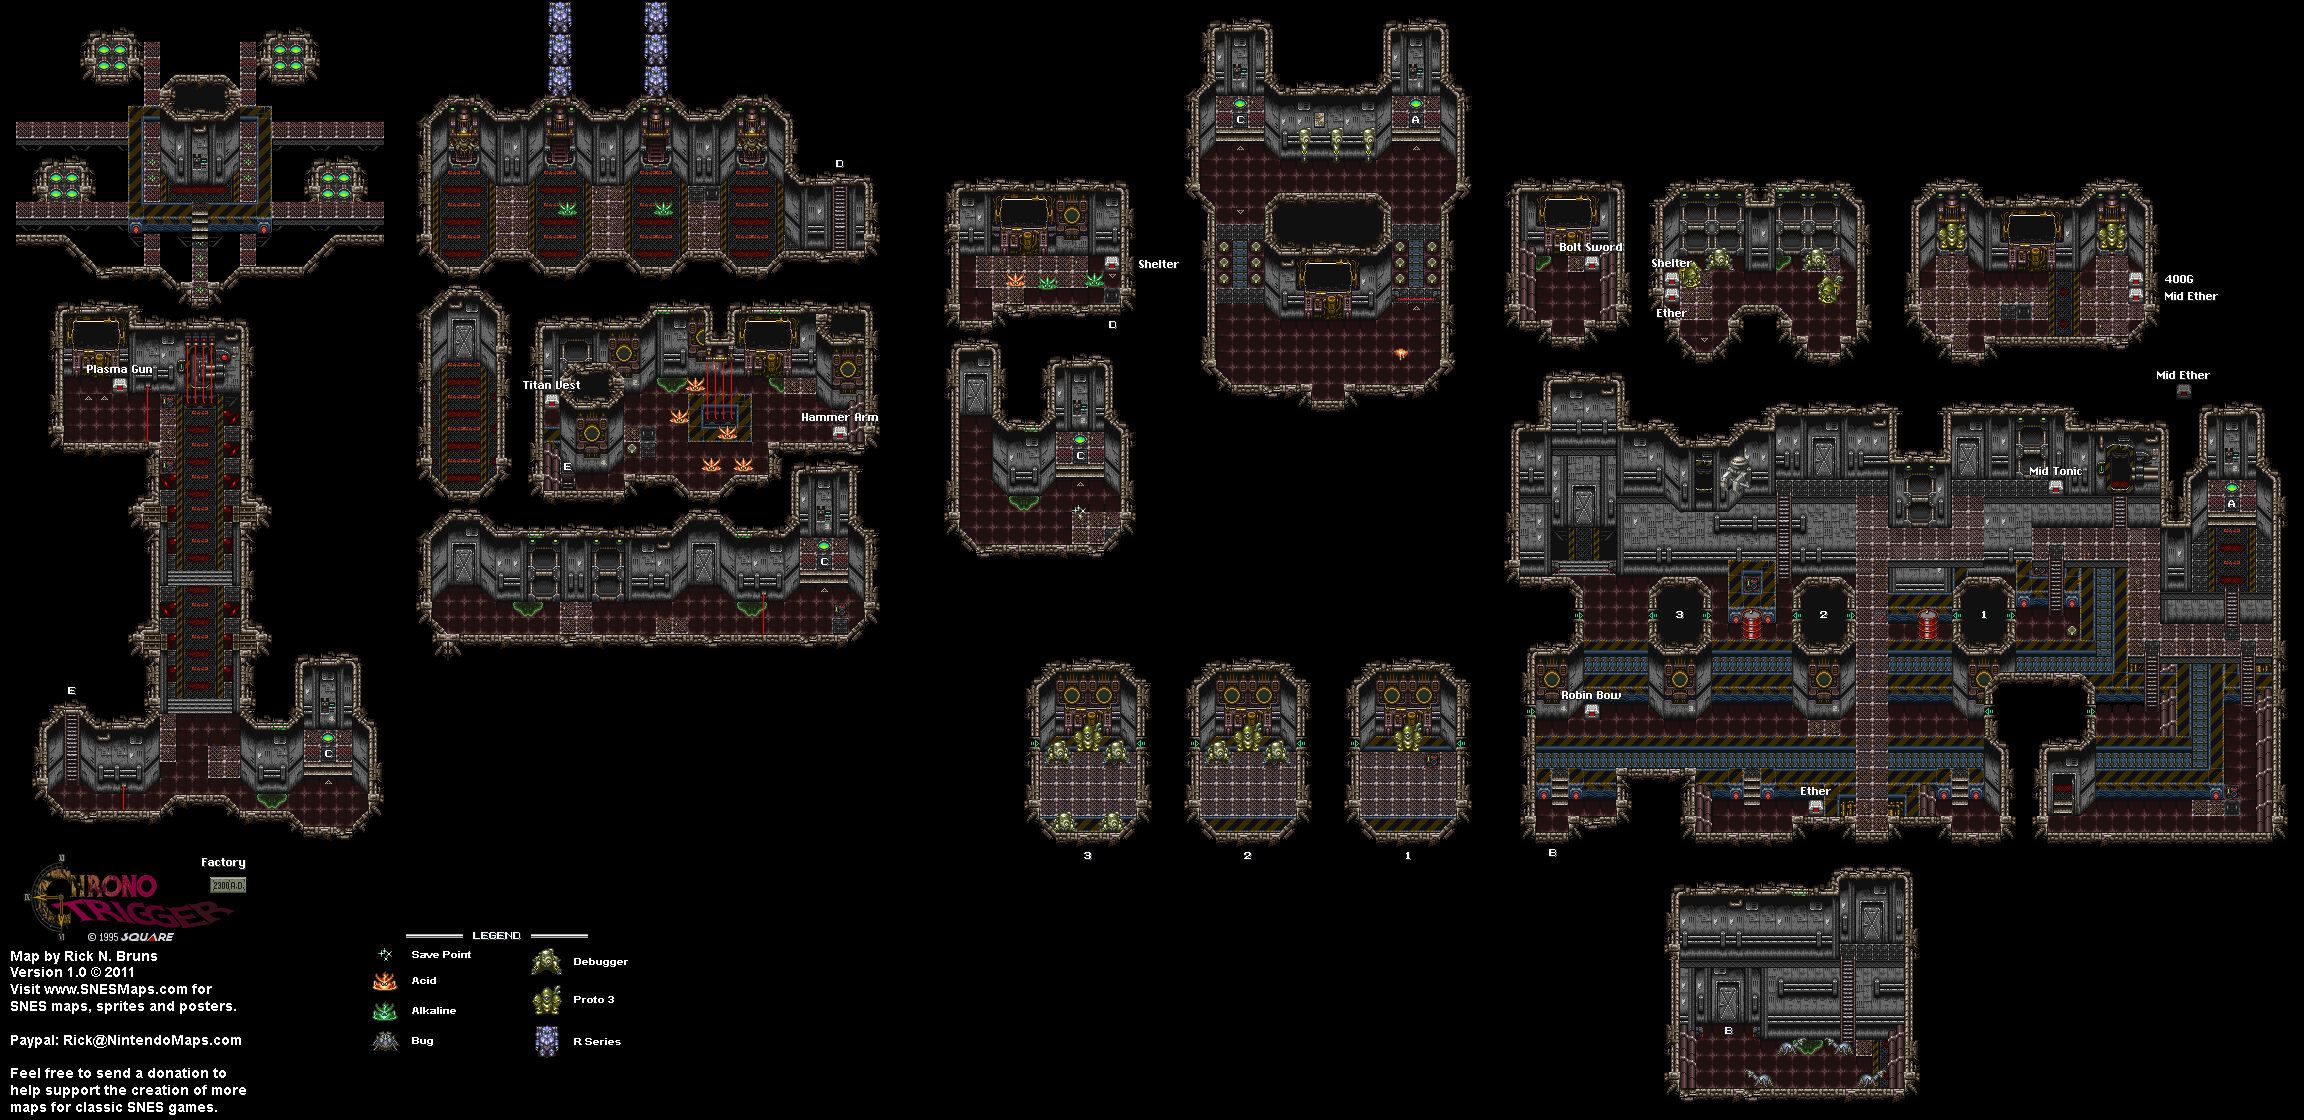 Chrono Trigger - Factory (2300 AD) Super Nintendo SNES Map on dragon age: inquisition map, dragon warrior vii map, animal crossing map, alex kidd in miracle world map, conker's bad fur day map, chrono cross map, pillars of eternity map, tales of hearts map, fire emblem map, grand knights history map, mighty bomb jack map, the elder scrolls v: skyrim map, mortal kombat x map, super ghouls 'n ghosts map, kingdom hearts birth by sleep map, baldur's gate ii map, grand theft auto: san andreas map, assassin's creed unity map, drakengard map, earthbound map,